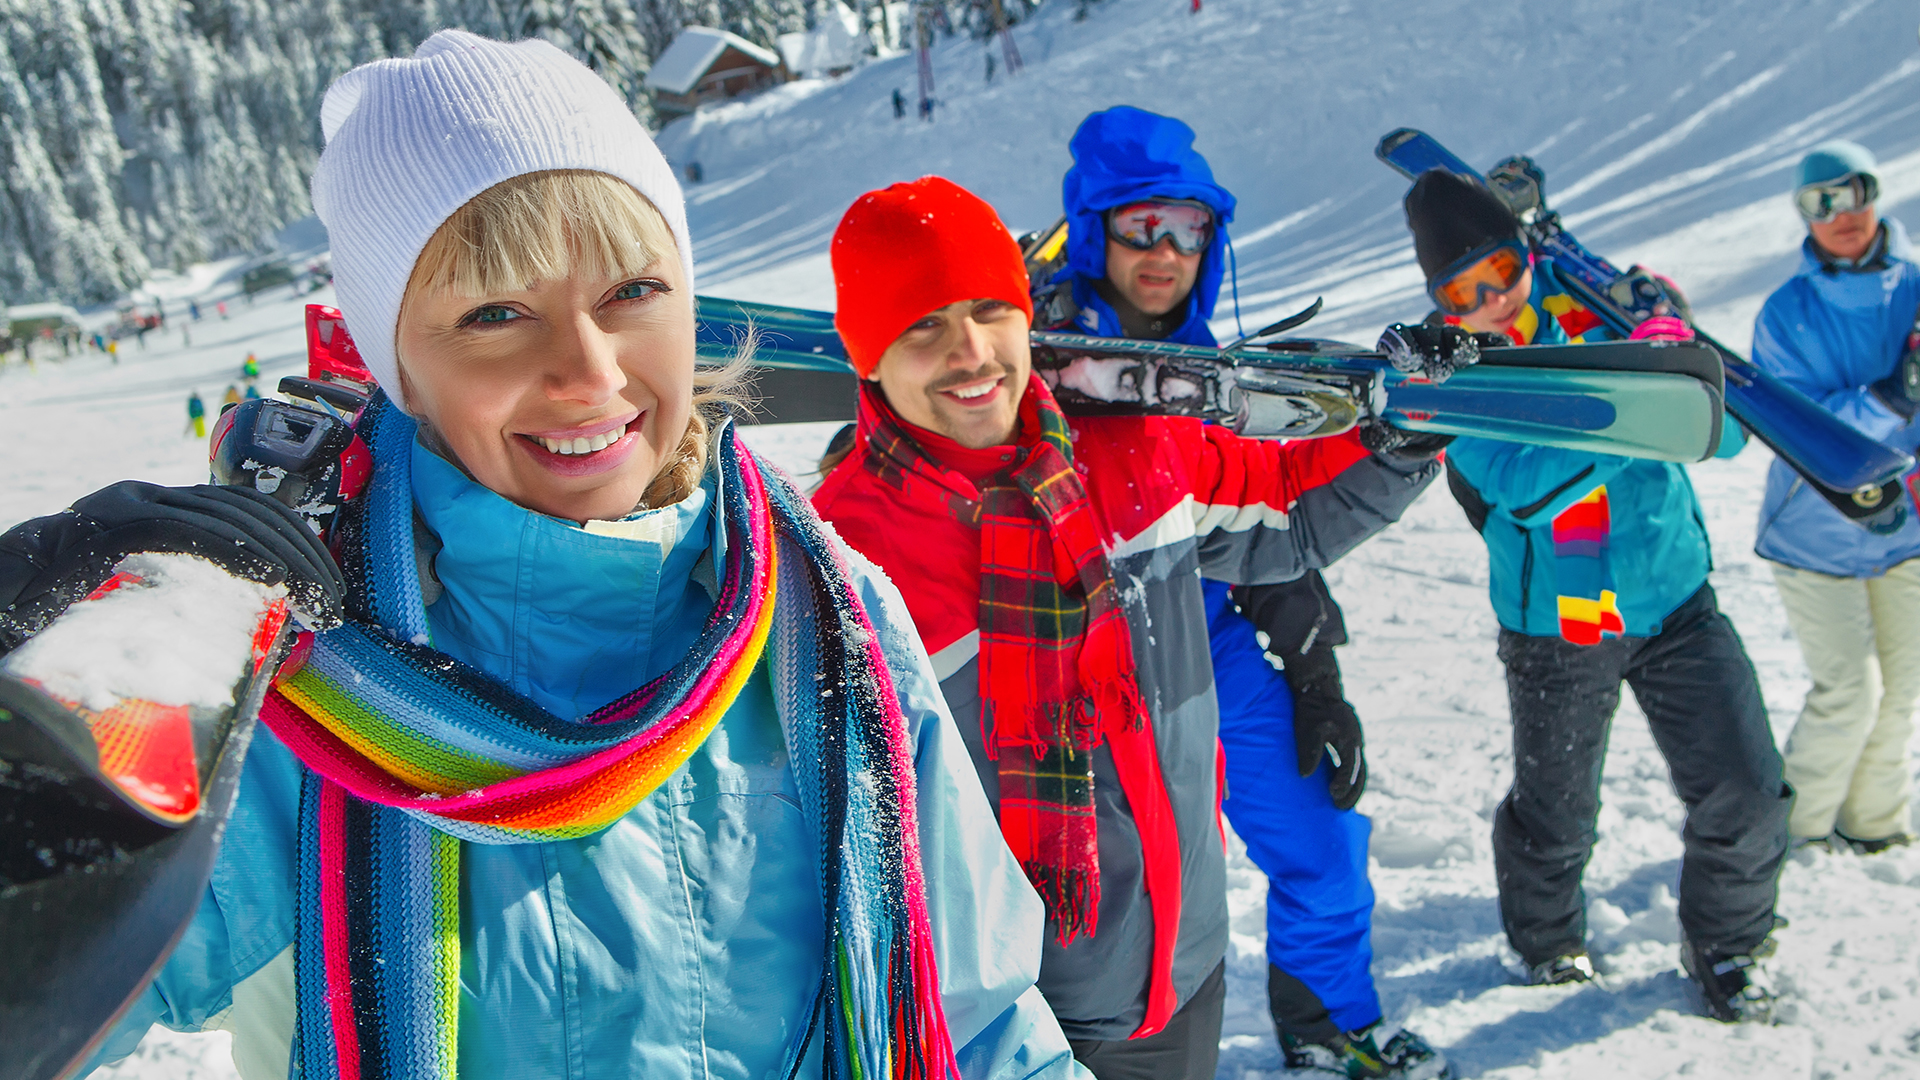 THE BEST CHOICE FOR TEXAS' SKI TRIPS.